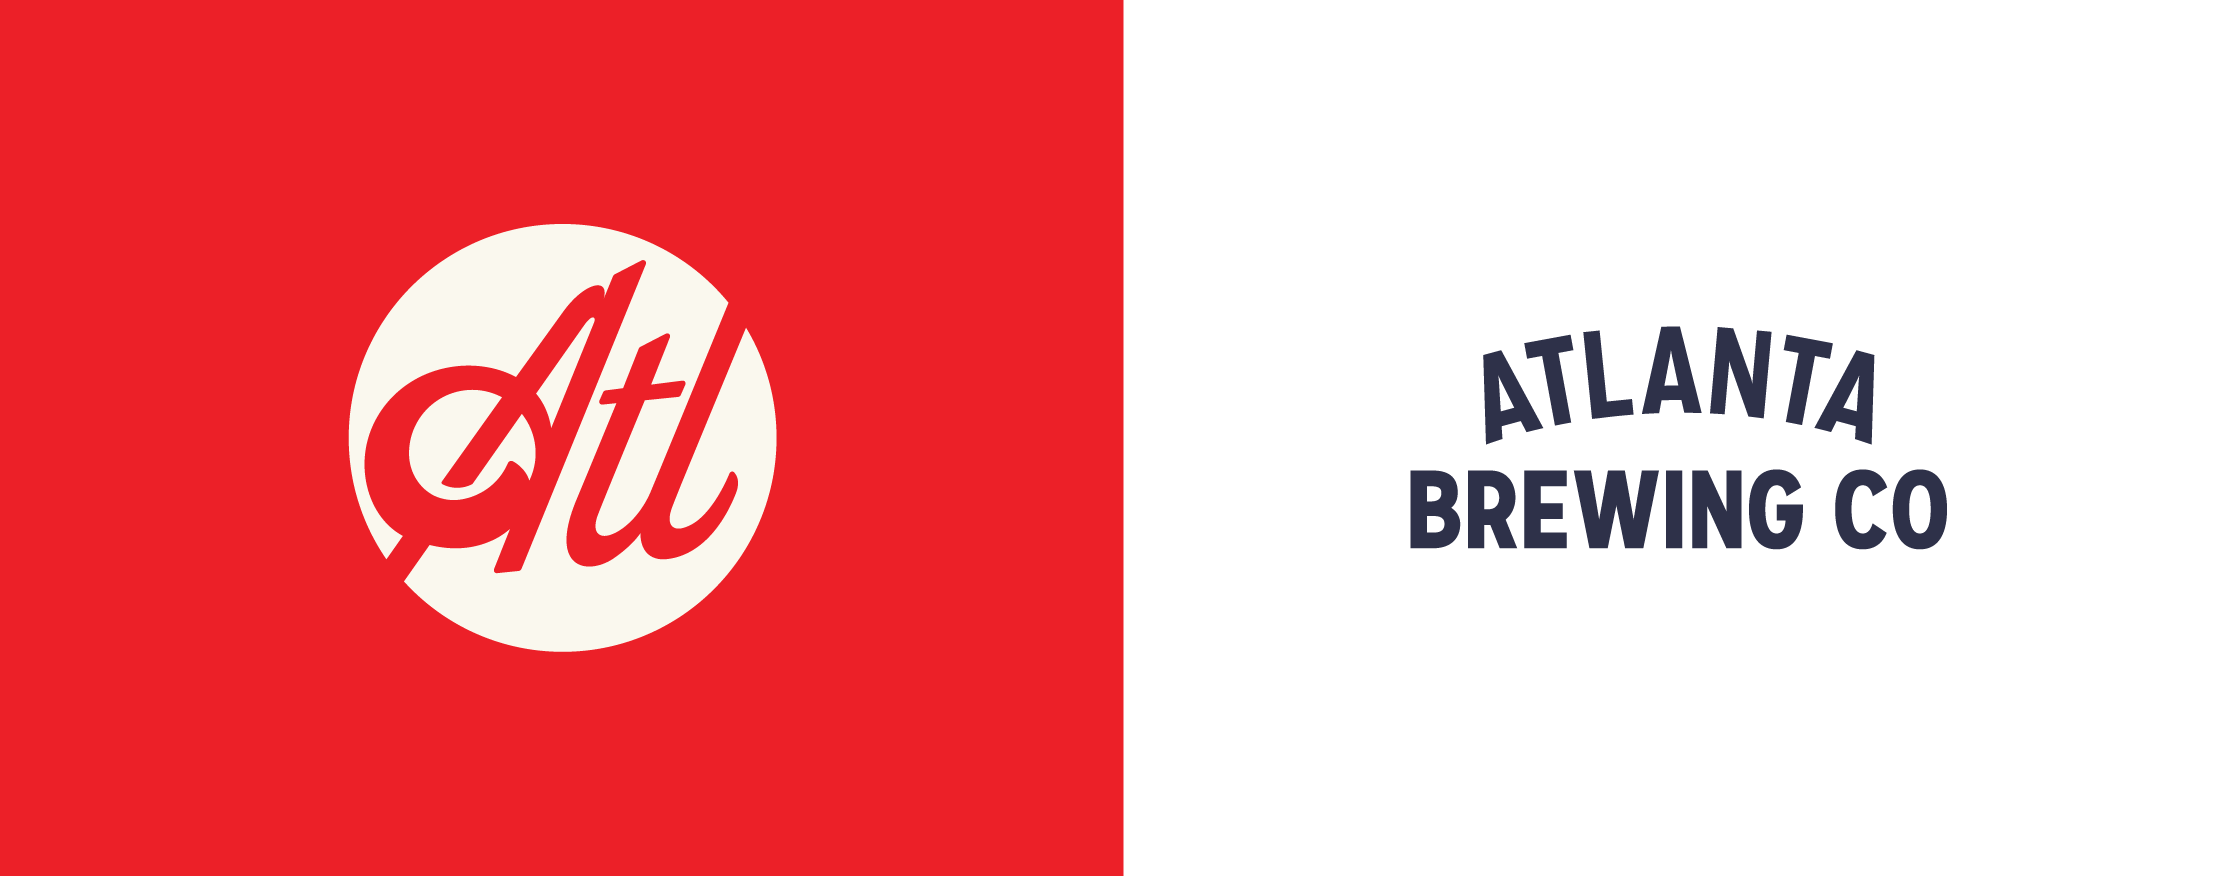 Rebranding and Repositioning of US Brewery / World Brand & Packaging Design Society